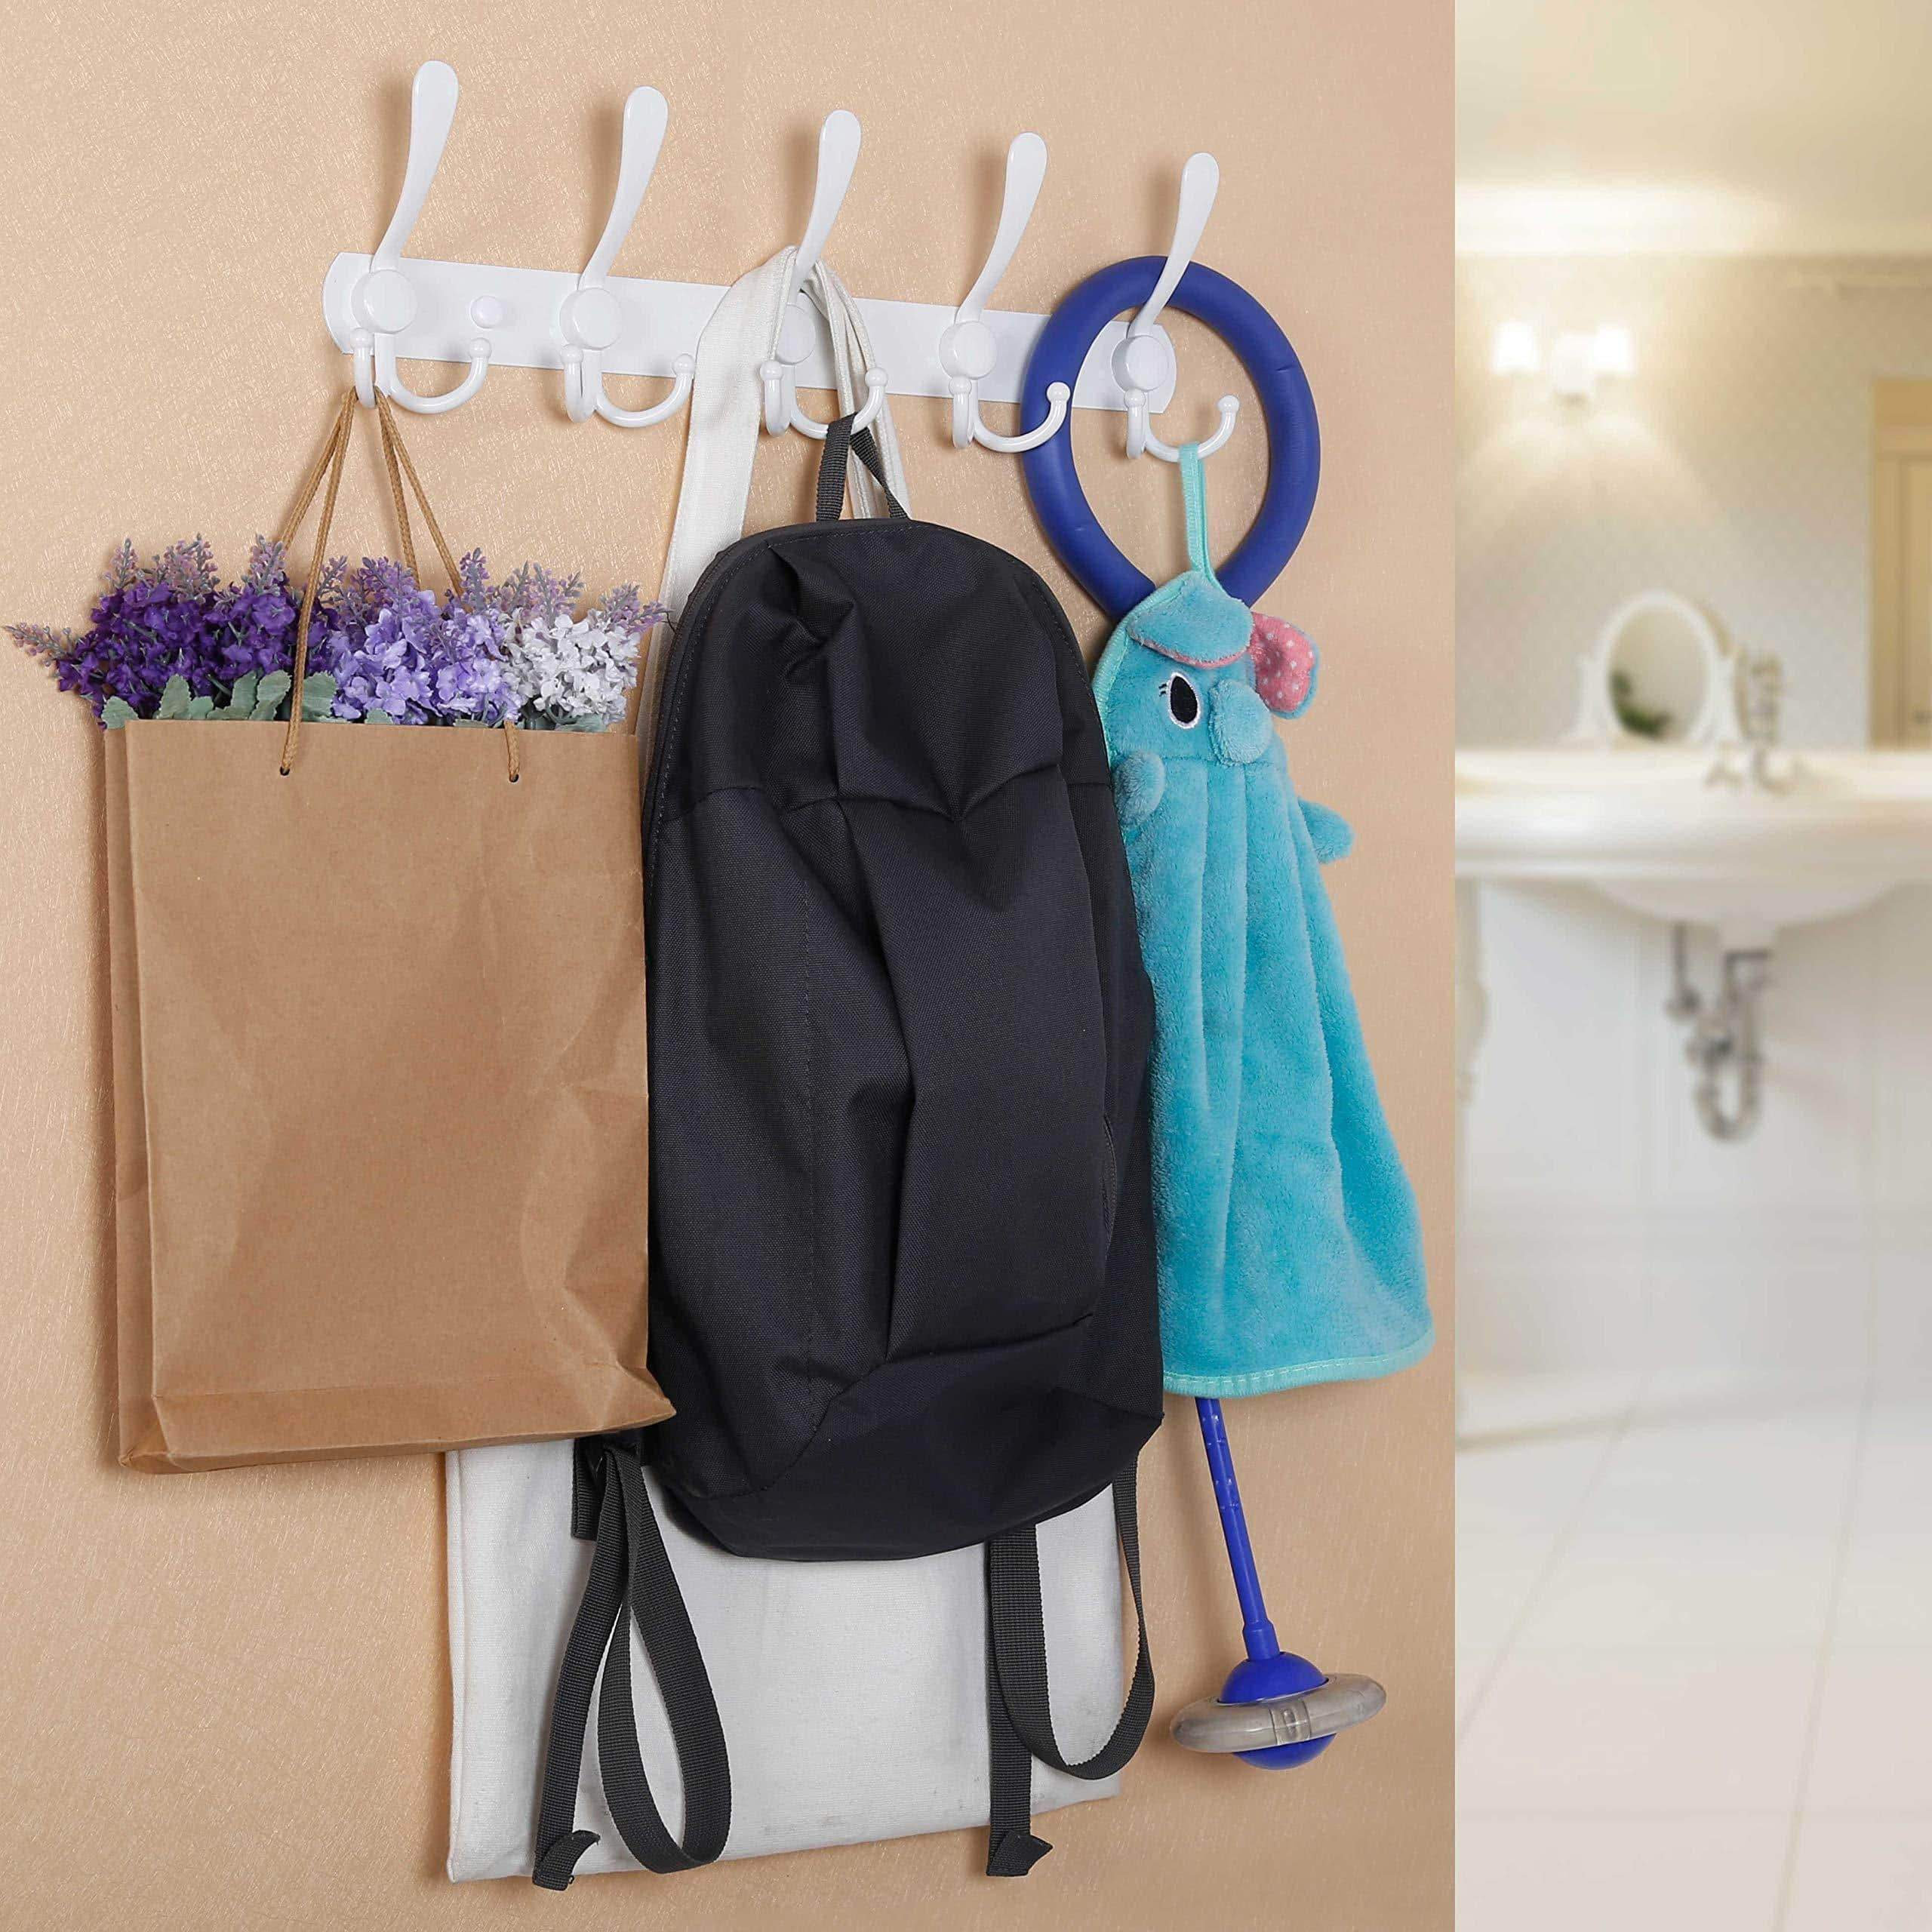 Discover the best webi coat rack wall mounted 5 tri hooks decorative coat hook rack triple hook rail wall hooks for bathroom kitchen office entryway closet white 2 packs